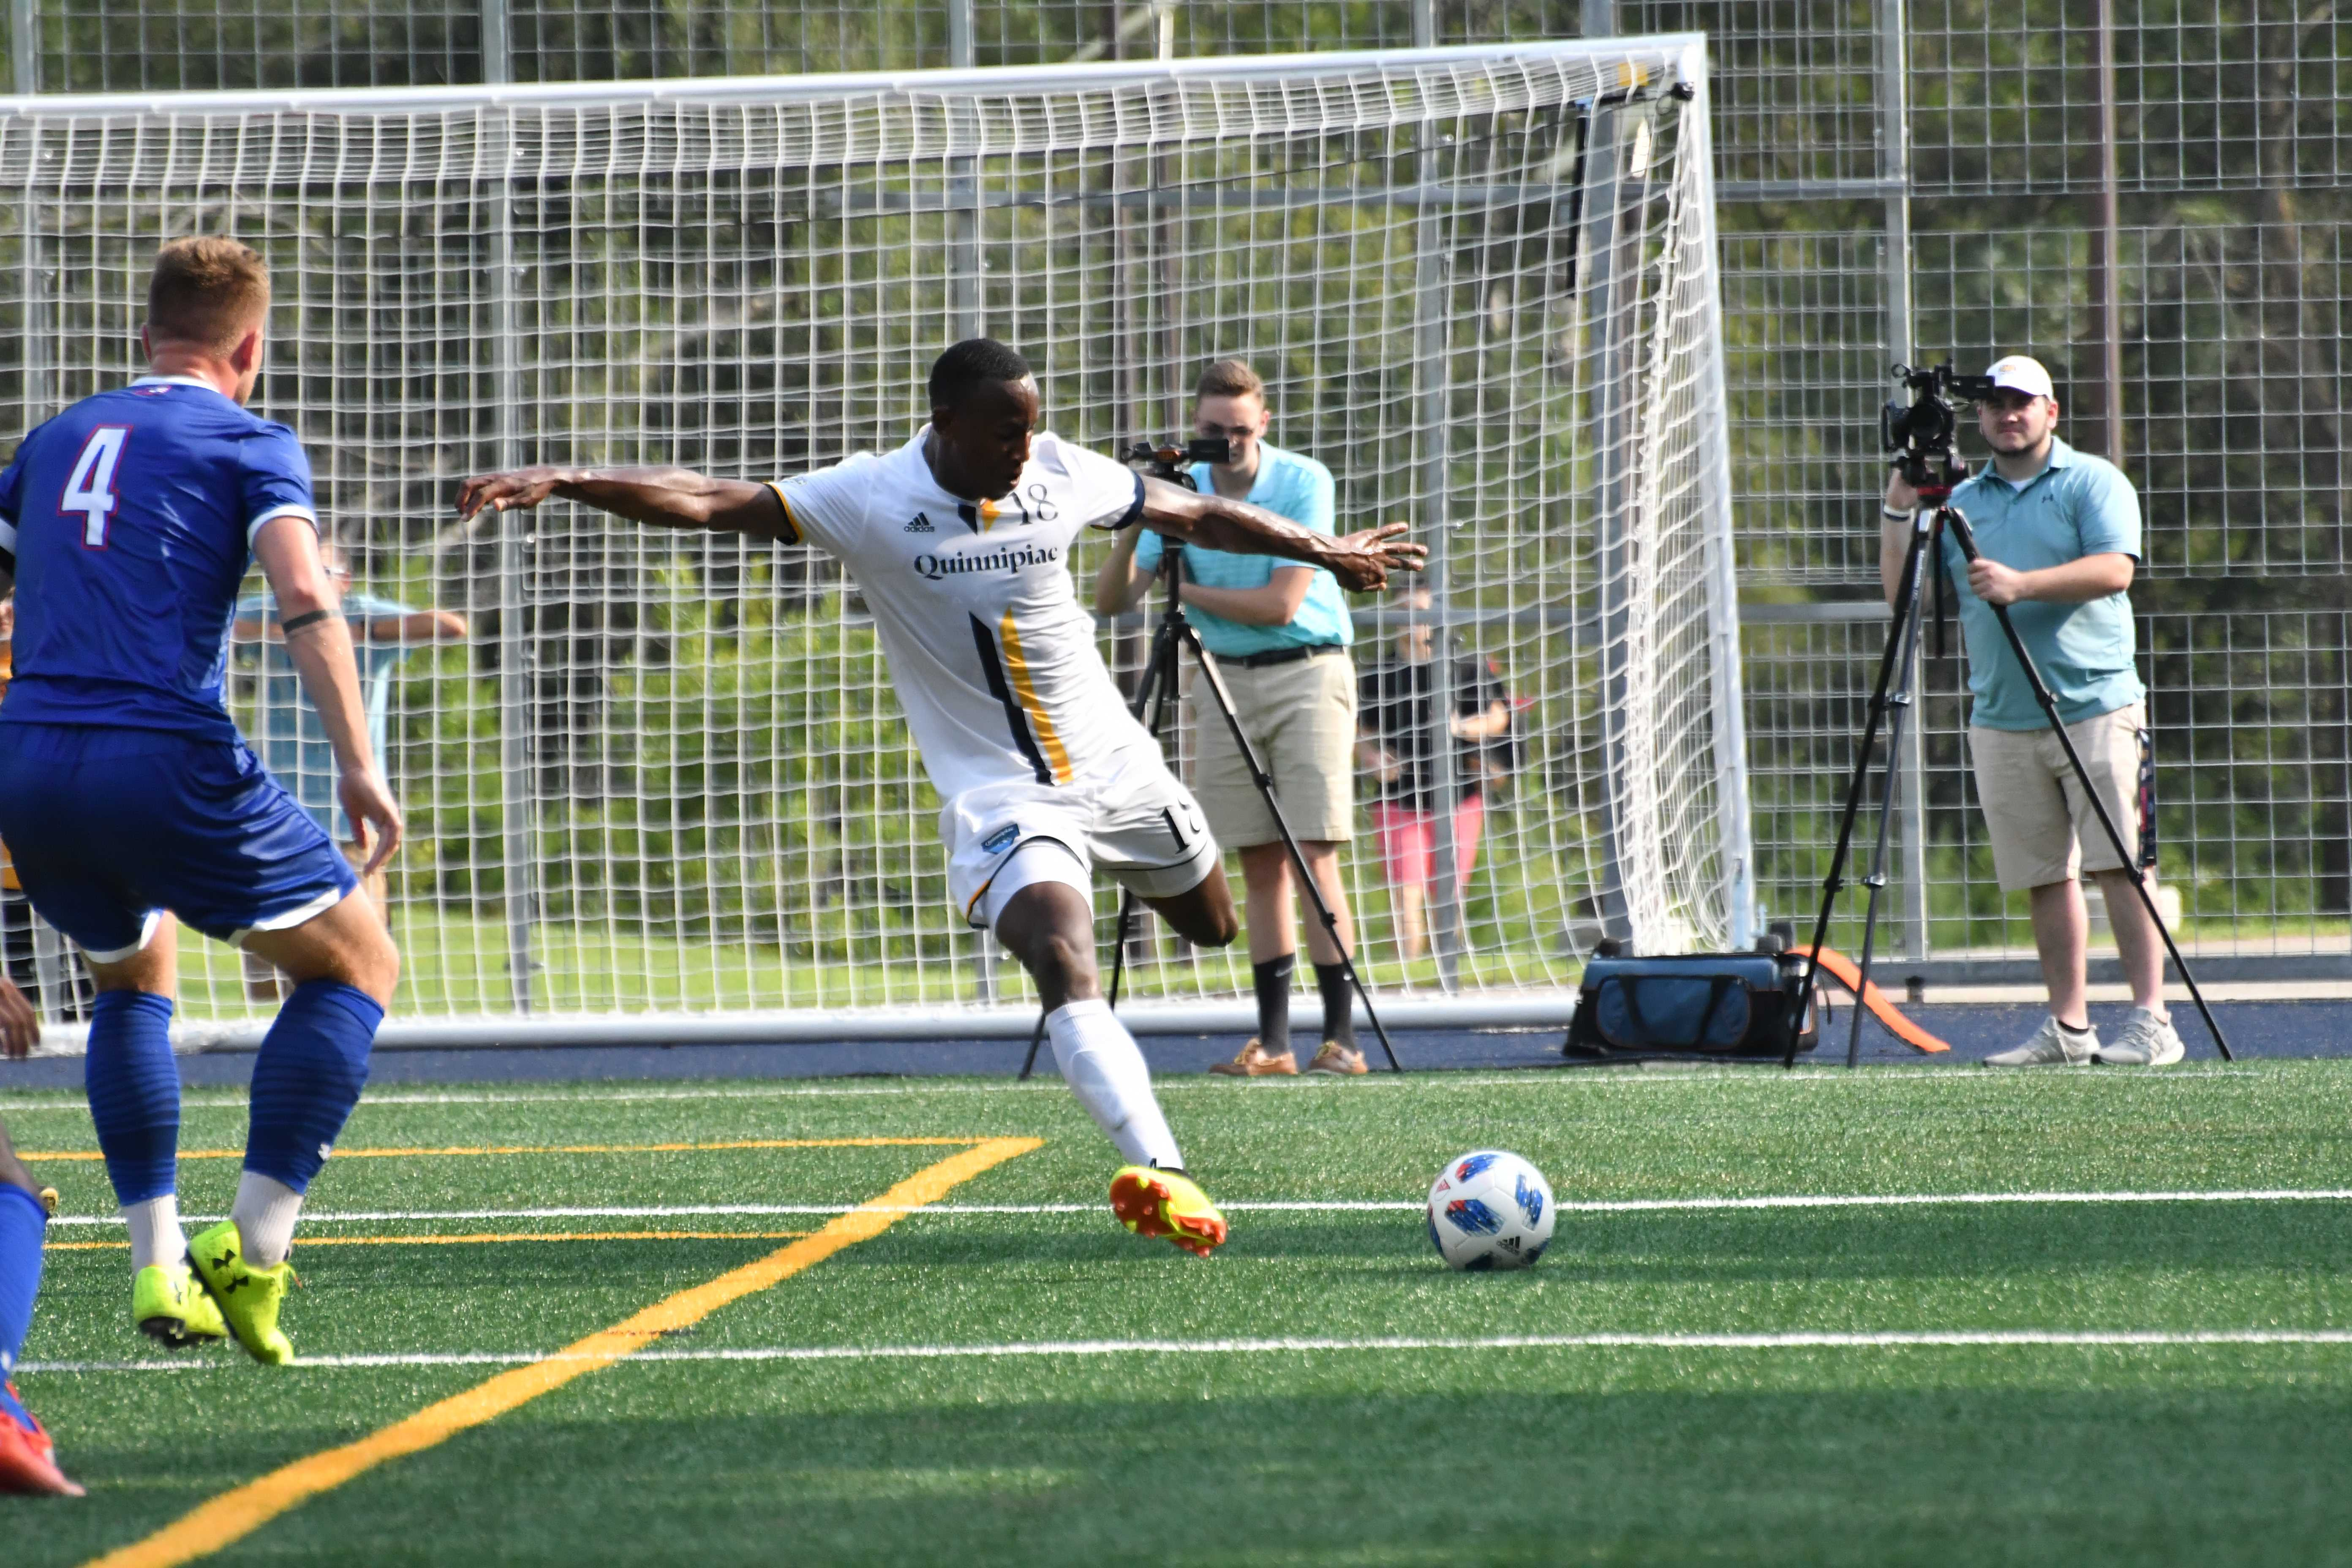 Quinnipiac men's soccer tops Central Connecticut State for second straight win